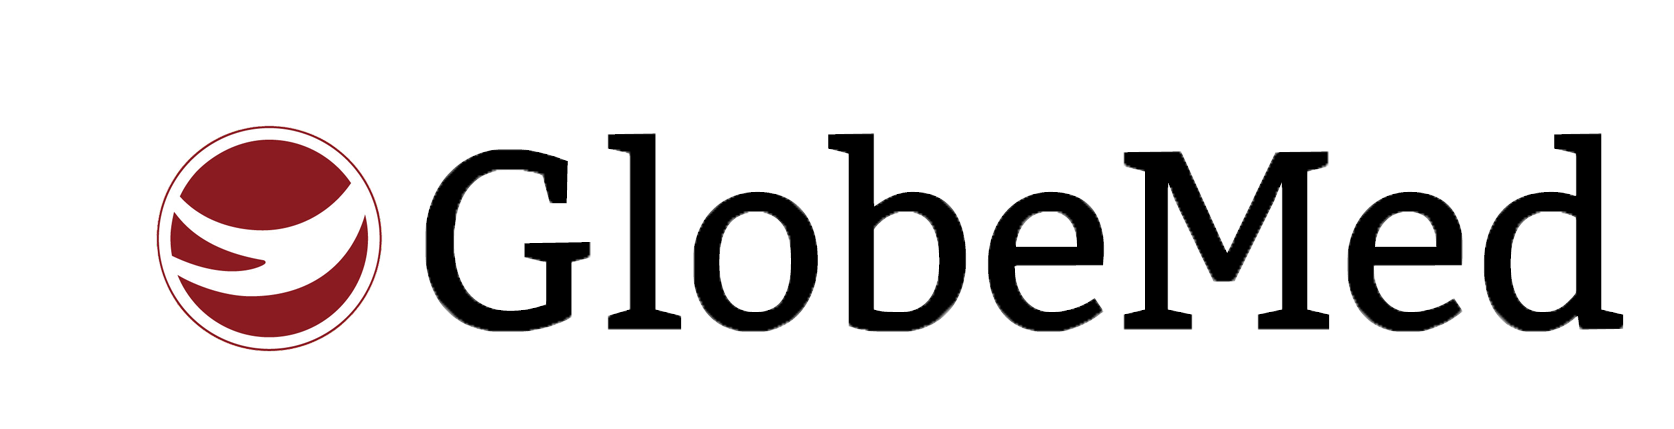 New-GlobeMed-logo